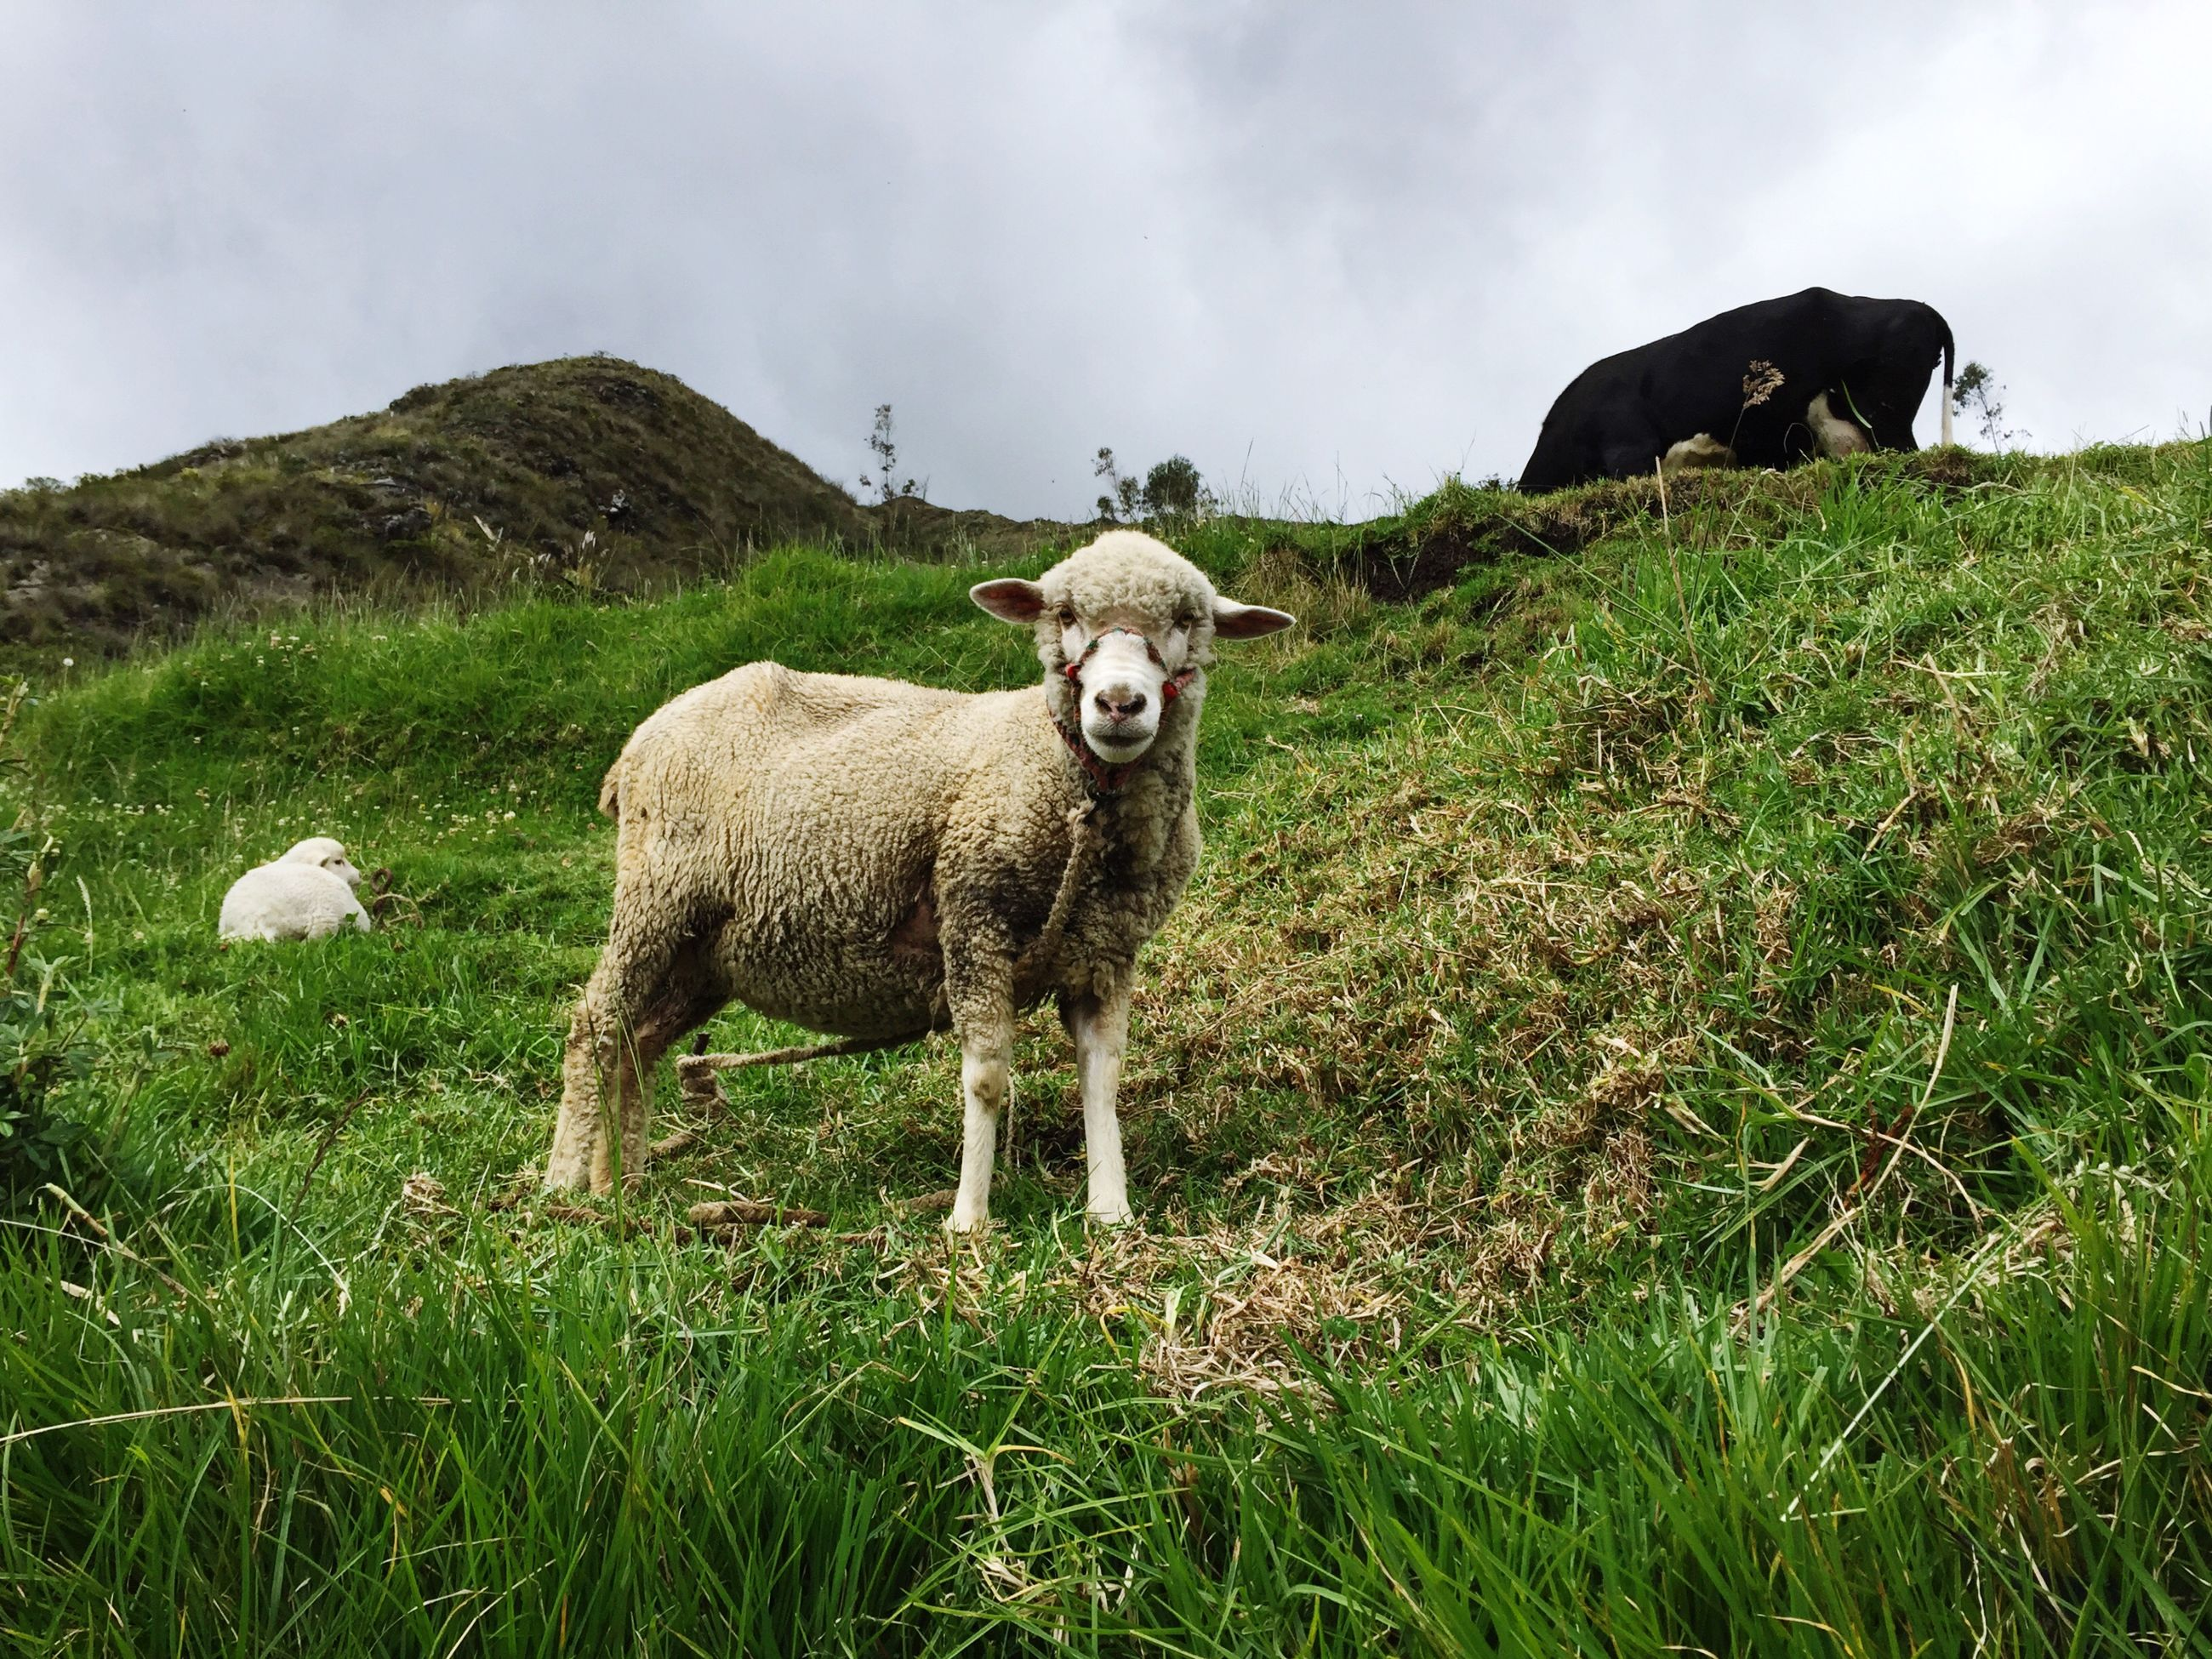 grass, animal themes, mammal, field, grassy, domestic animals, sky, one animal, landscape, nature, sheep, standing, livestock, green color, day, no people, plant, outdoors, cloud - sky, full length